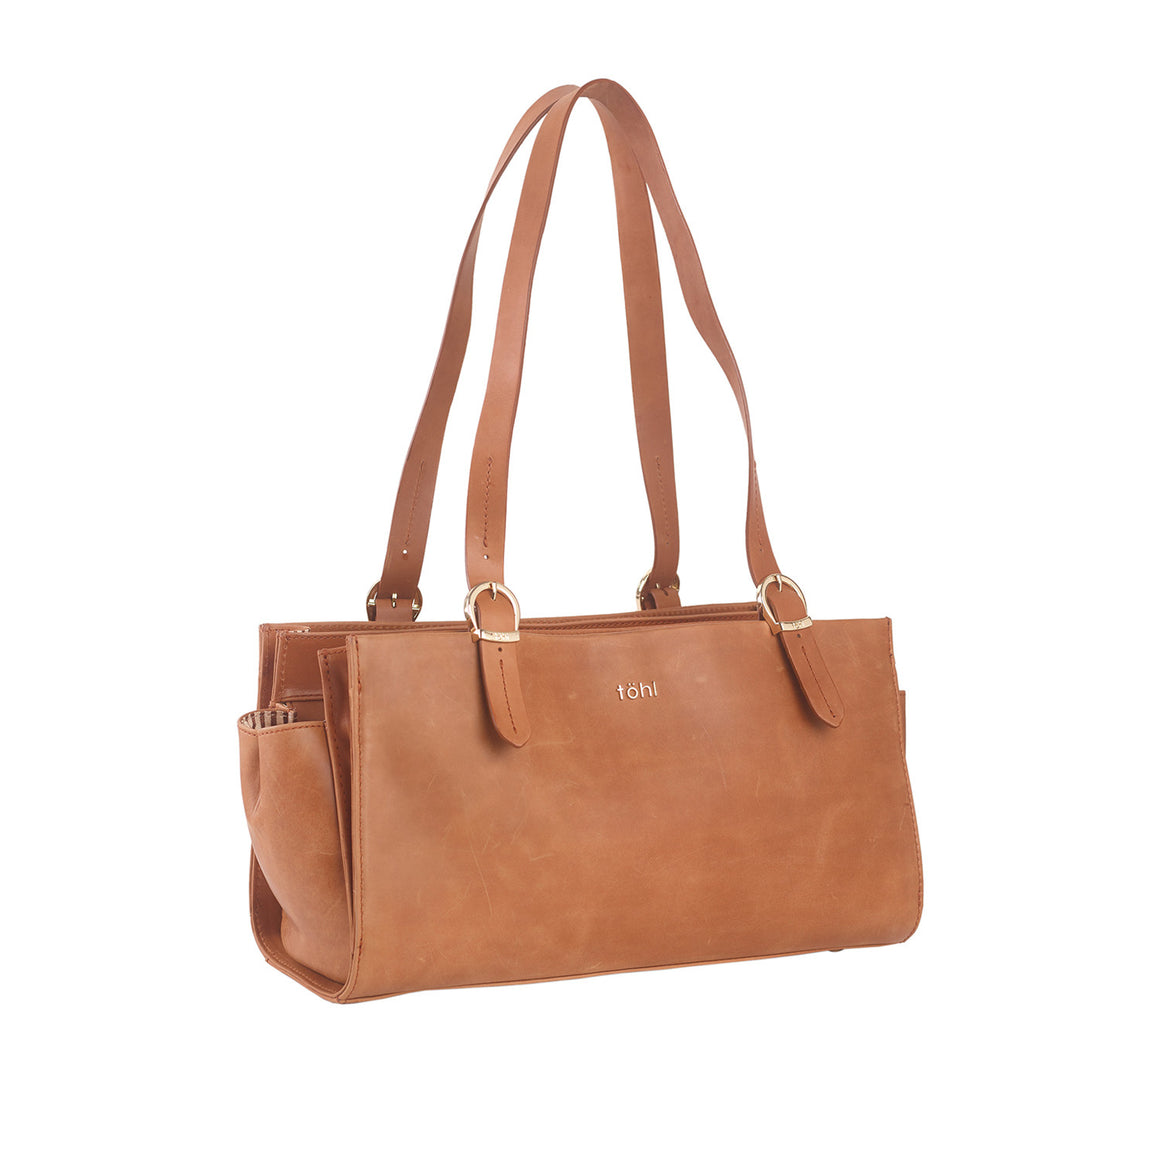 SB 0006 - TOHL CORTLAND WOMEN'S SHOULDER BAGUETTE - TAN